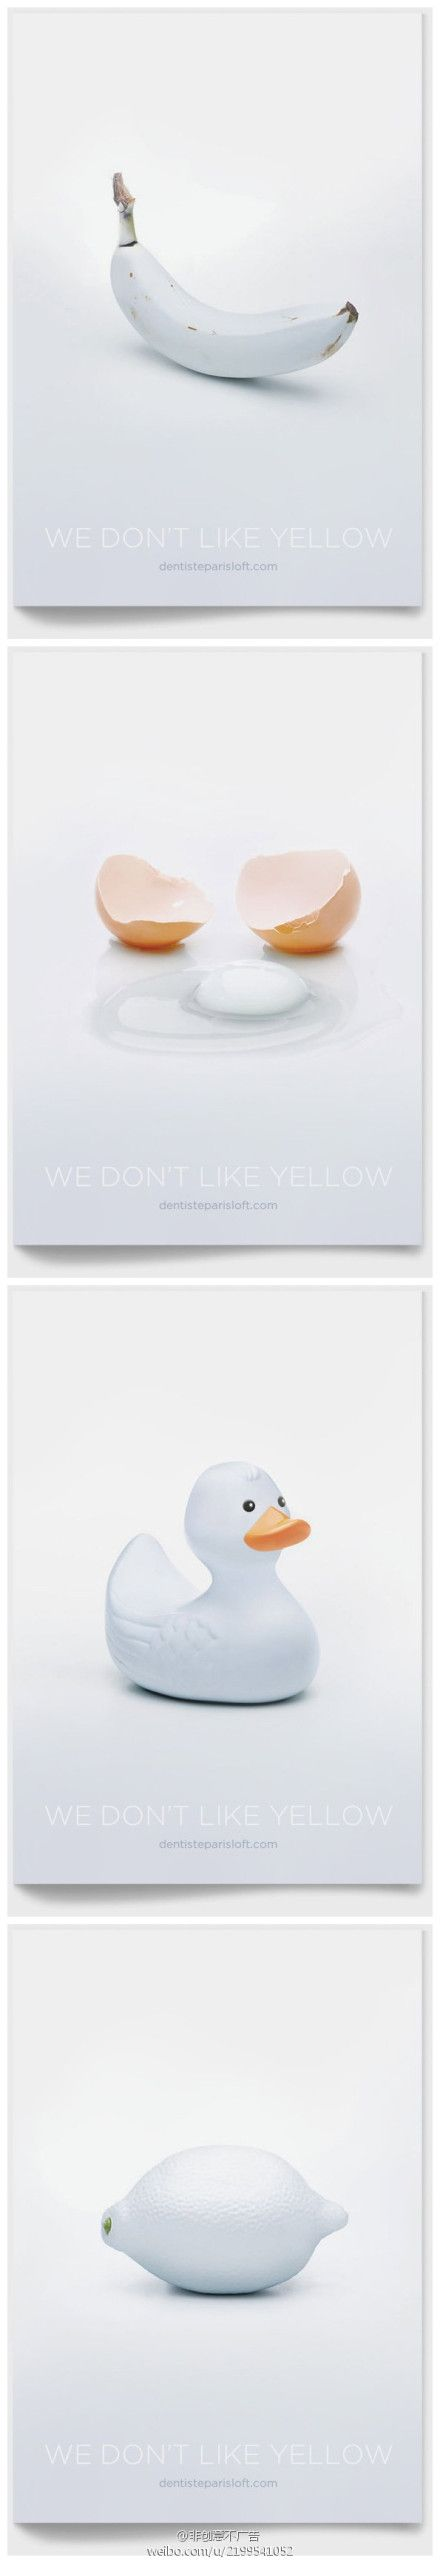 A dentist ads, We don't like yellow. || Yet Another Graphic Design Inspiration of the Week! Introducing Moire Studios a thriving website and graphic design studio. Feel Free to Follow us @moirestudiosjkt to see more remarkable pins like this. Or visit our website www.moirestudiosjkt.com to know more about us. #poster #advertisingDesign #graphicDesign ||